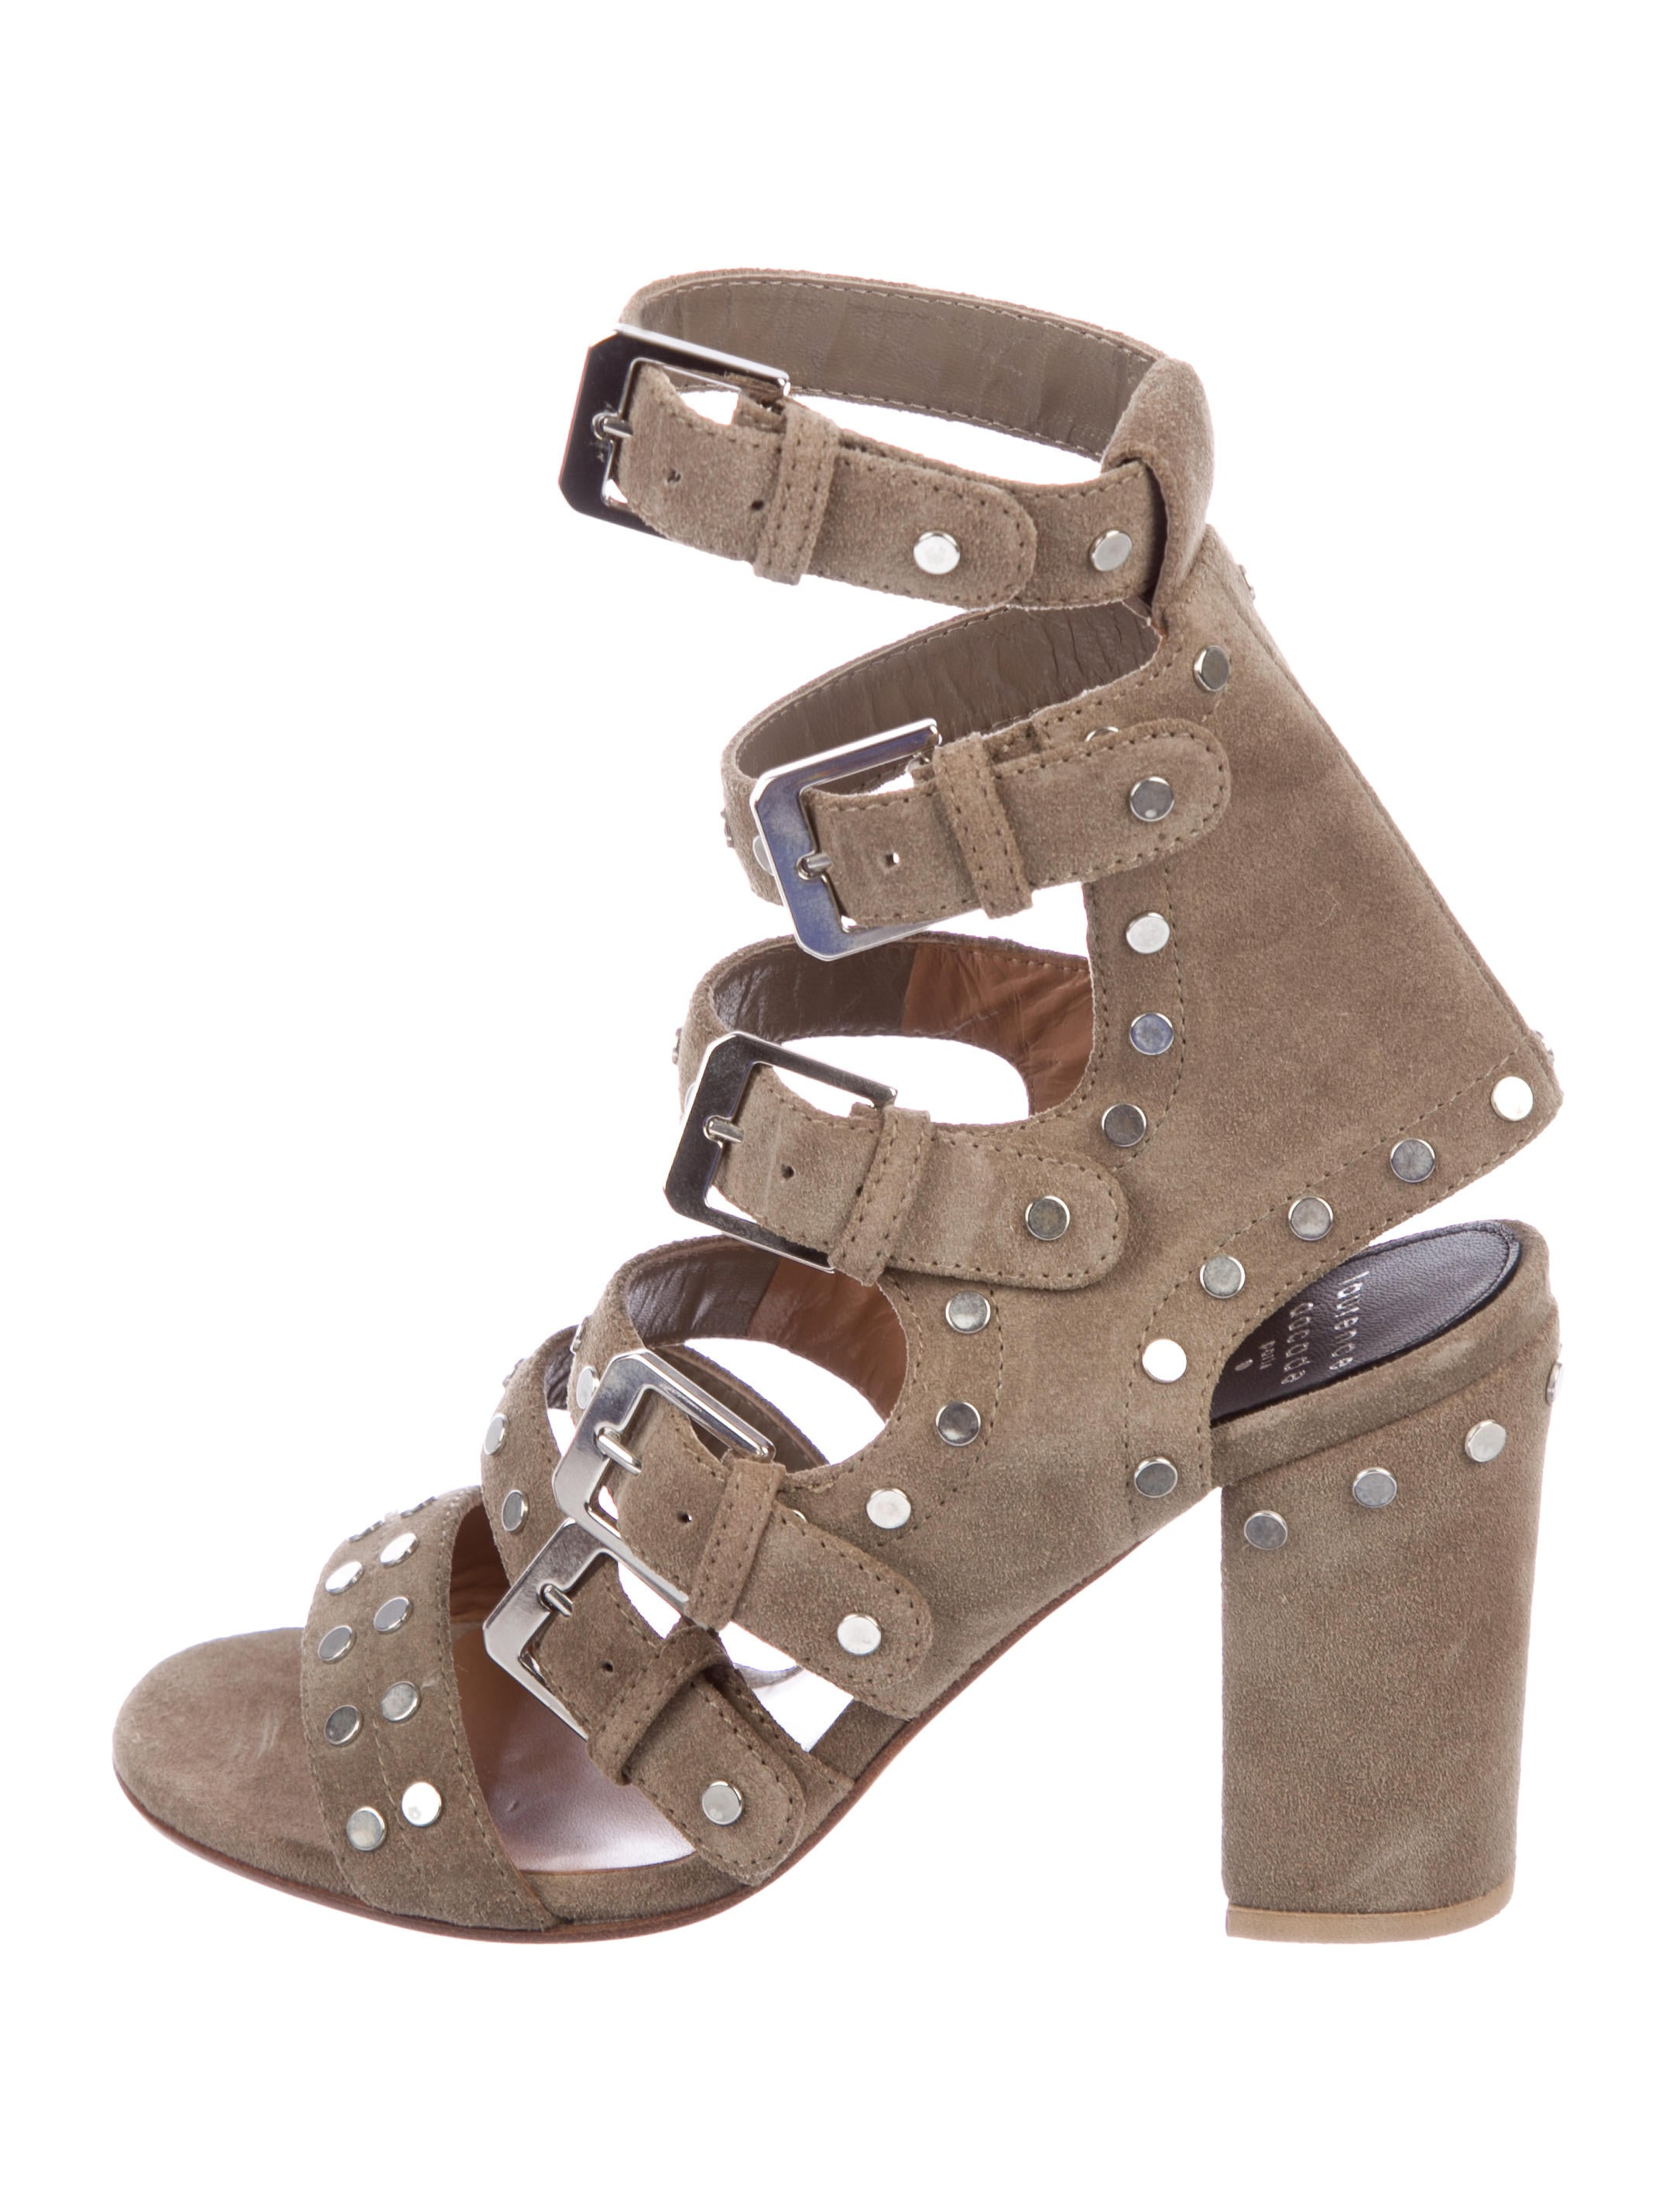 free shipping brand new unisex for sale the cheapest Laurence Dacade Multistrap Leather Sandals ar7o5f